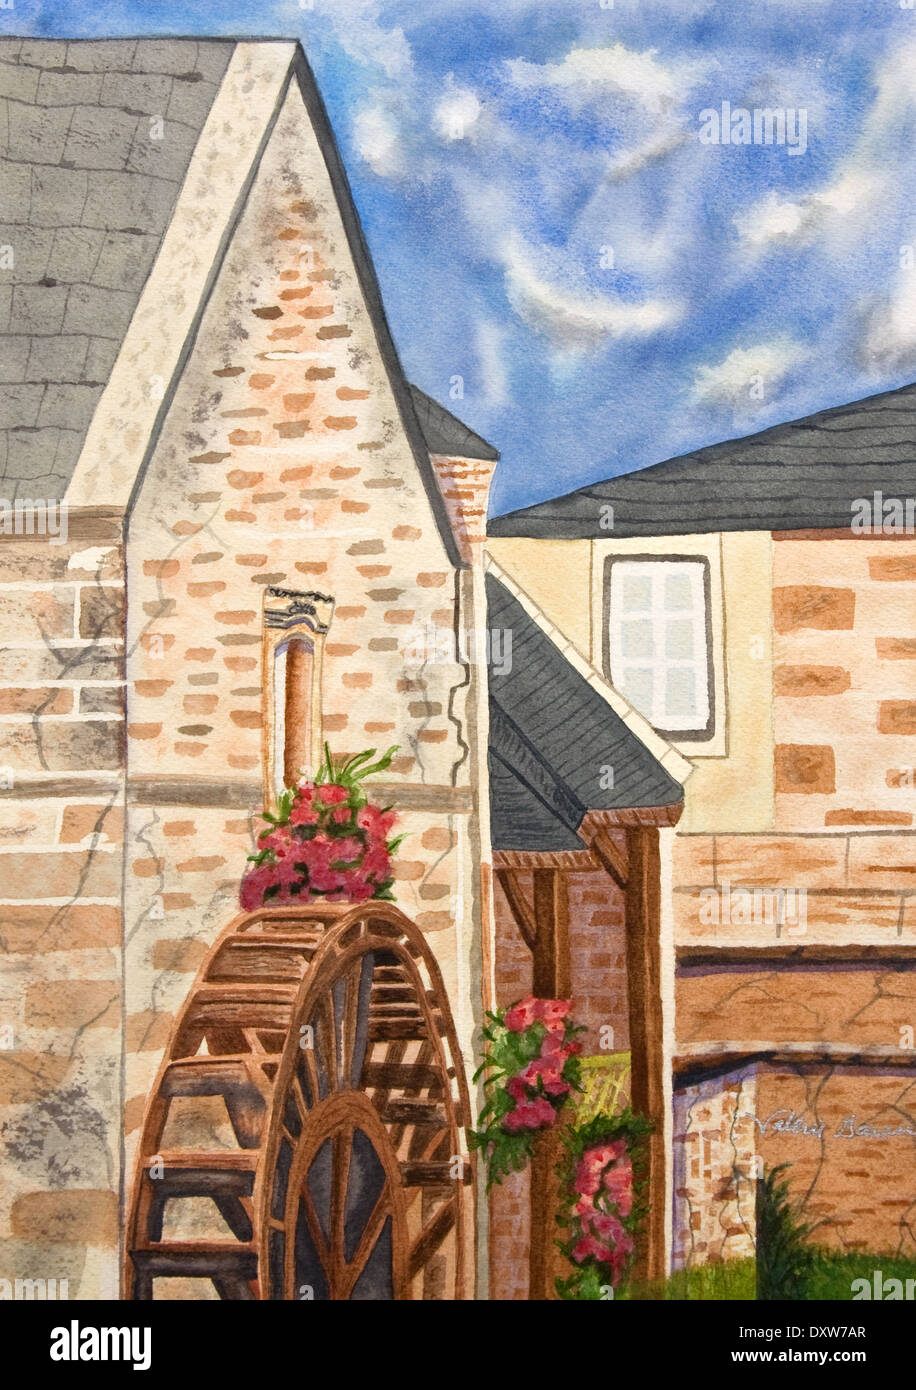 History of watercolor art - Stock Photo This Watercolor Art Is A Painting Of An Old French Mill Used In History To Mill Grain And Process Other Products